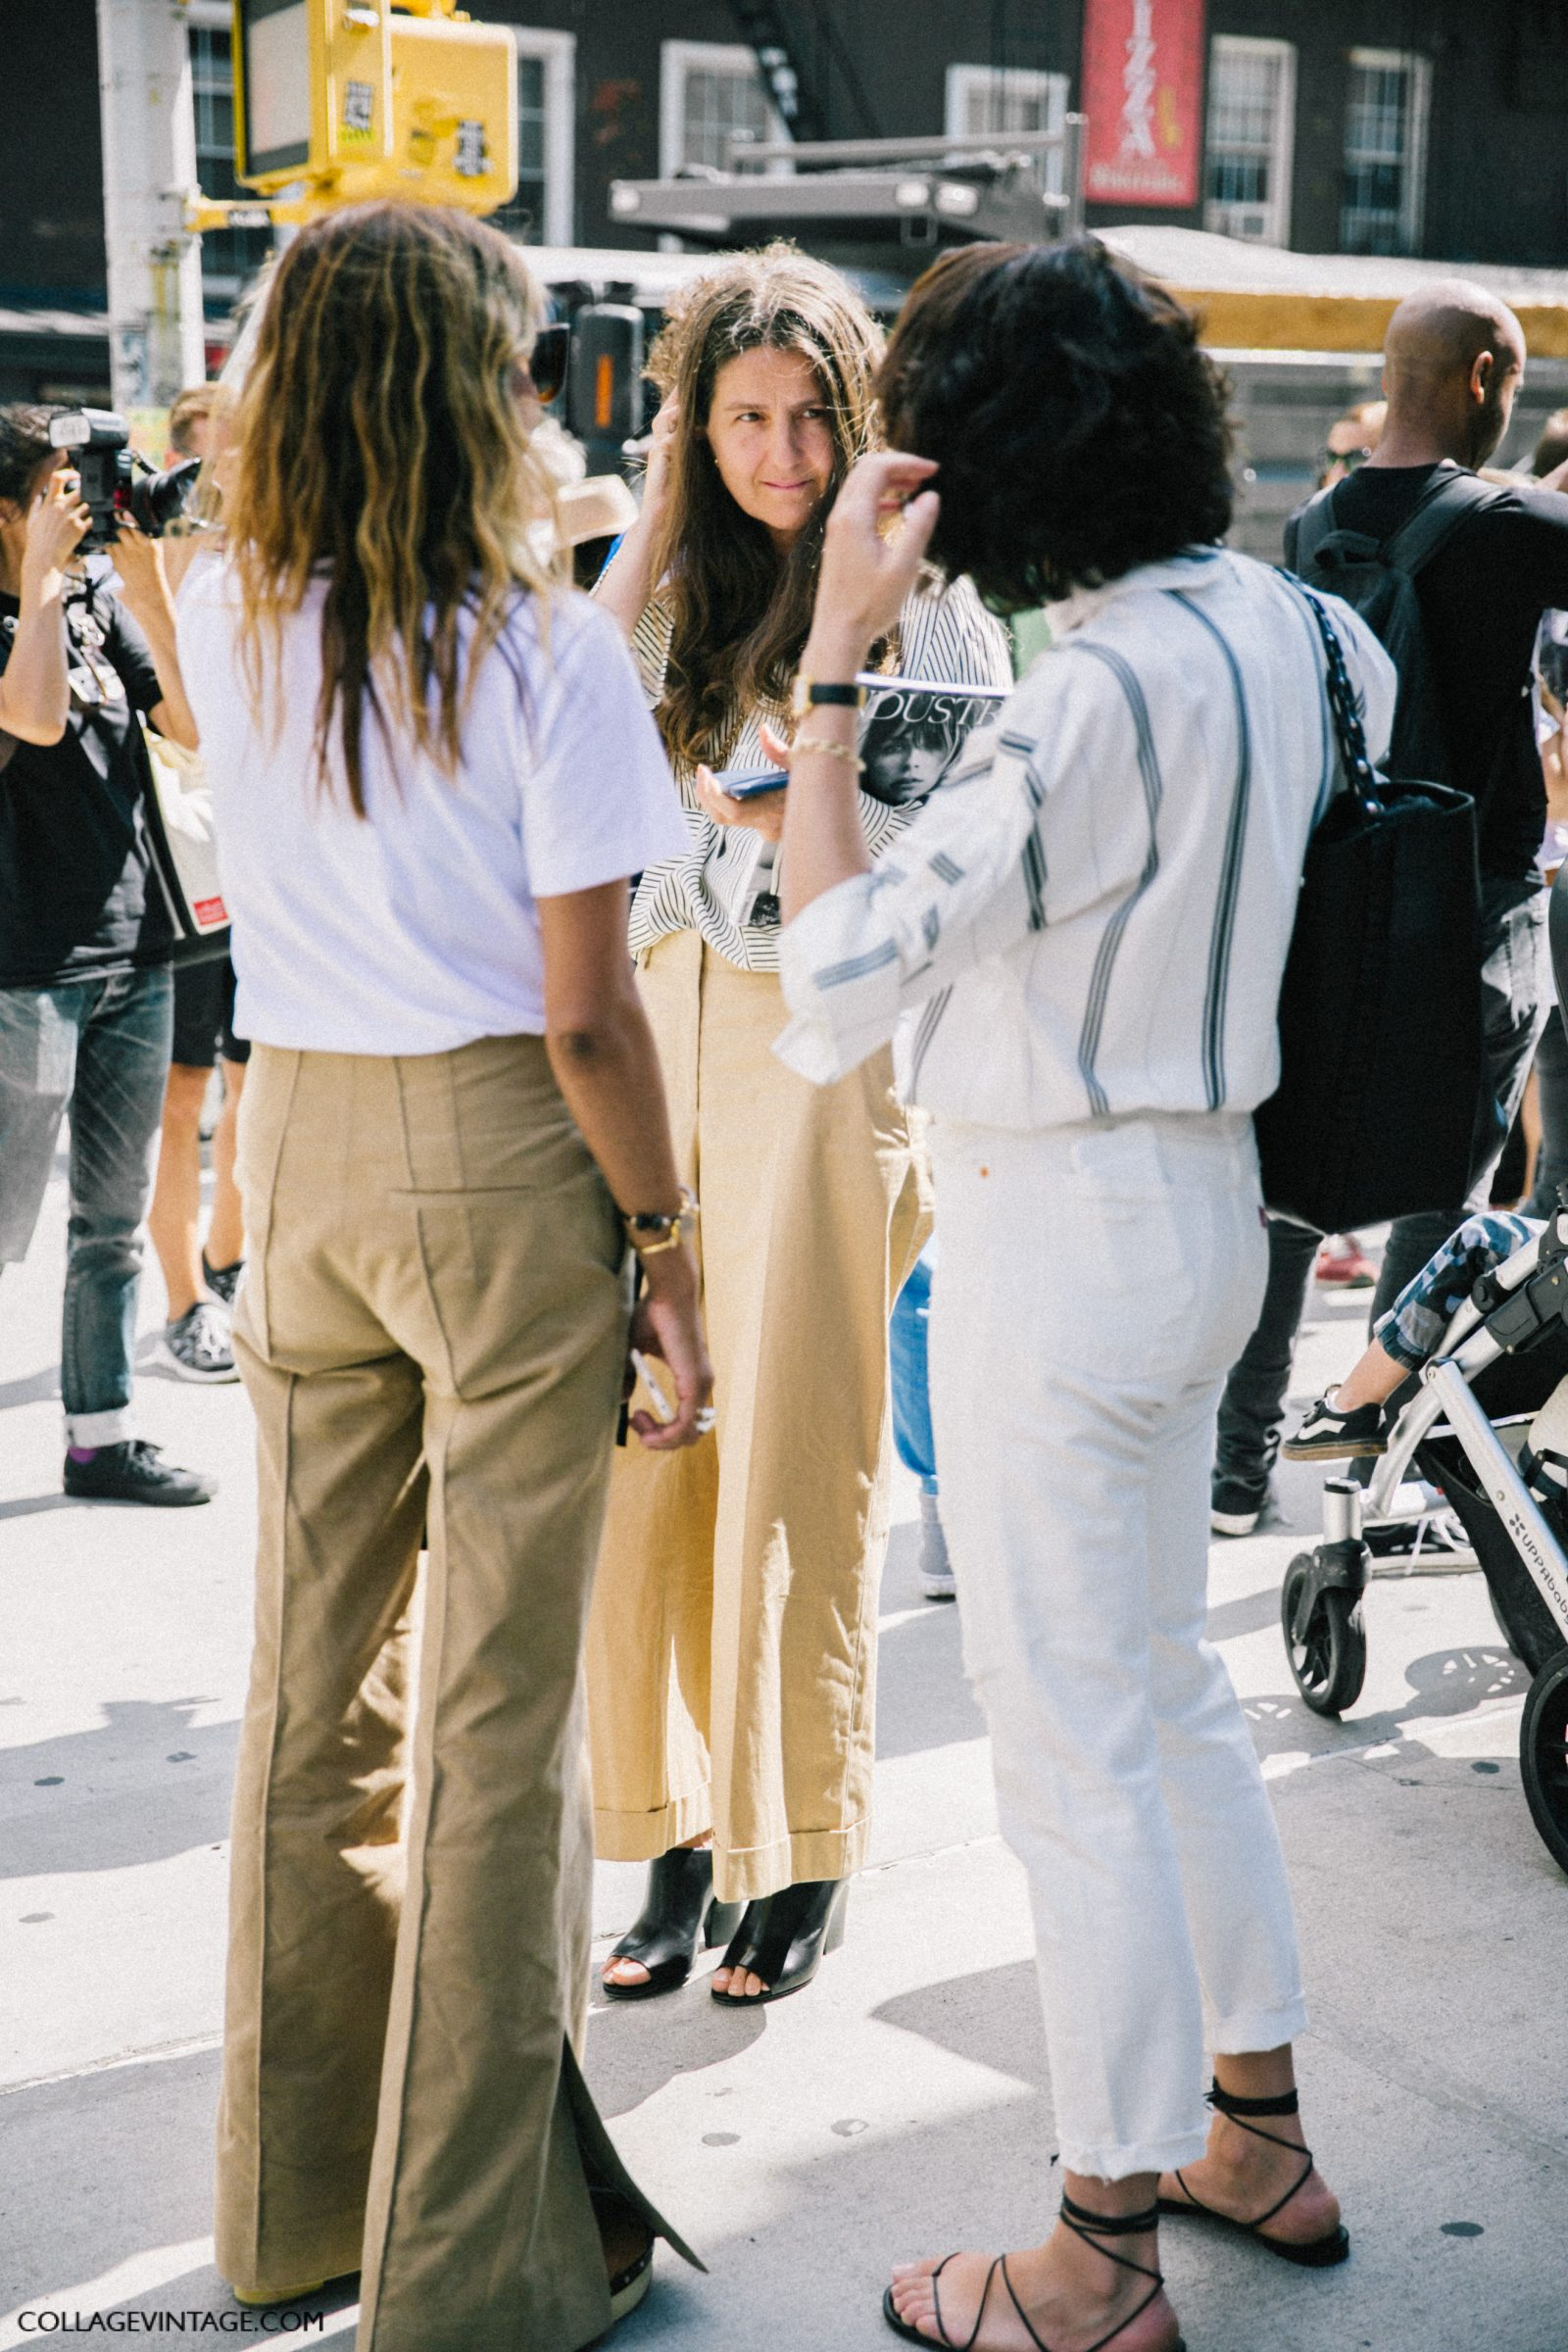 nyfw-new_york_fashion_week_ss17-street_style-outfits-collage_vintage-vintage-phillip_lim-the-row-proenza_schouler-rossie_aussolin-288